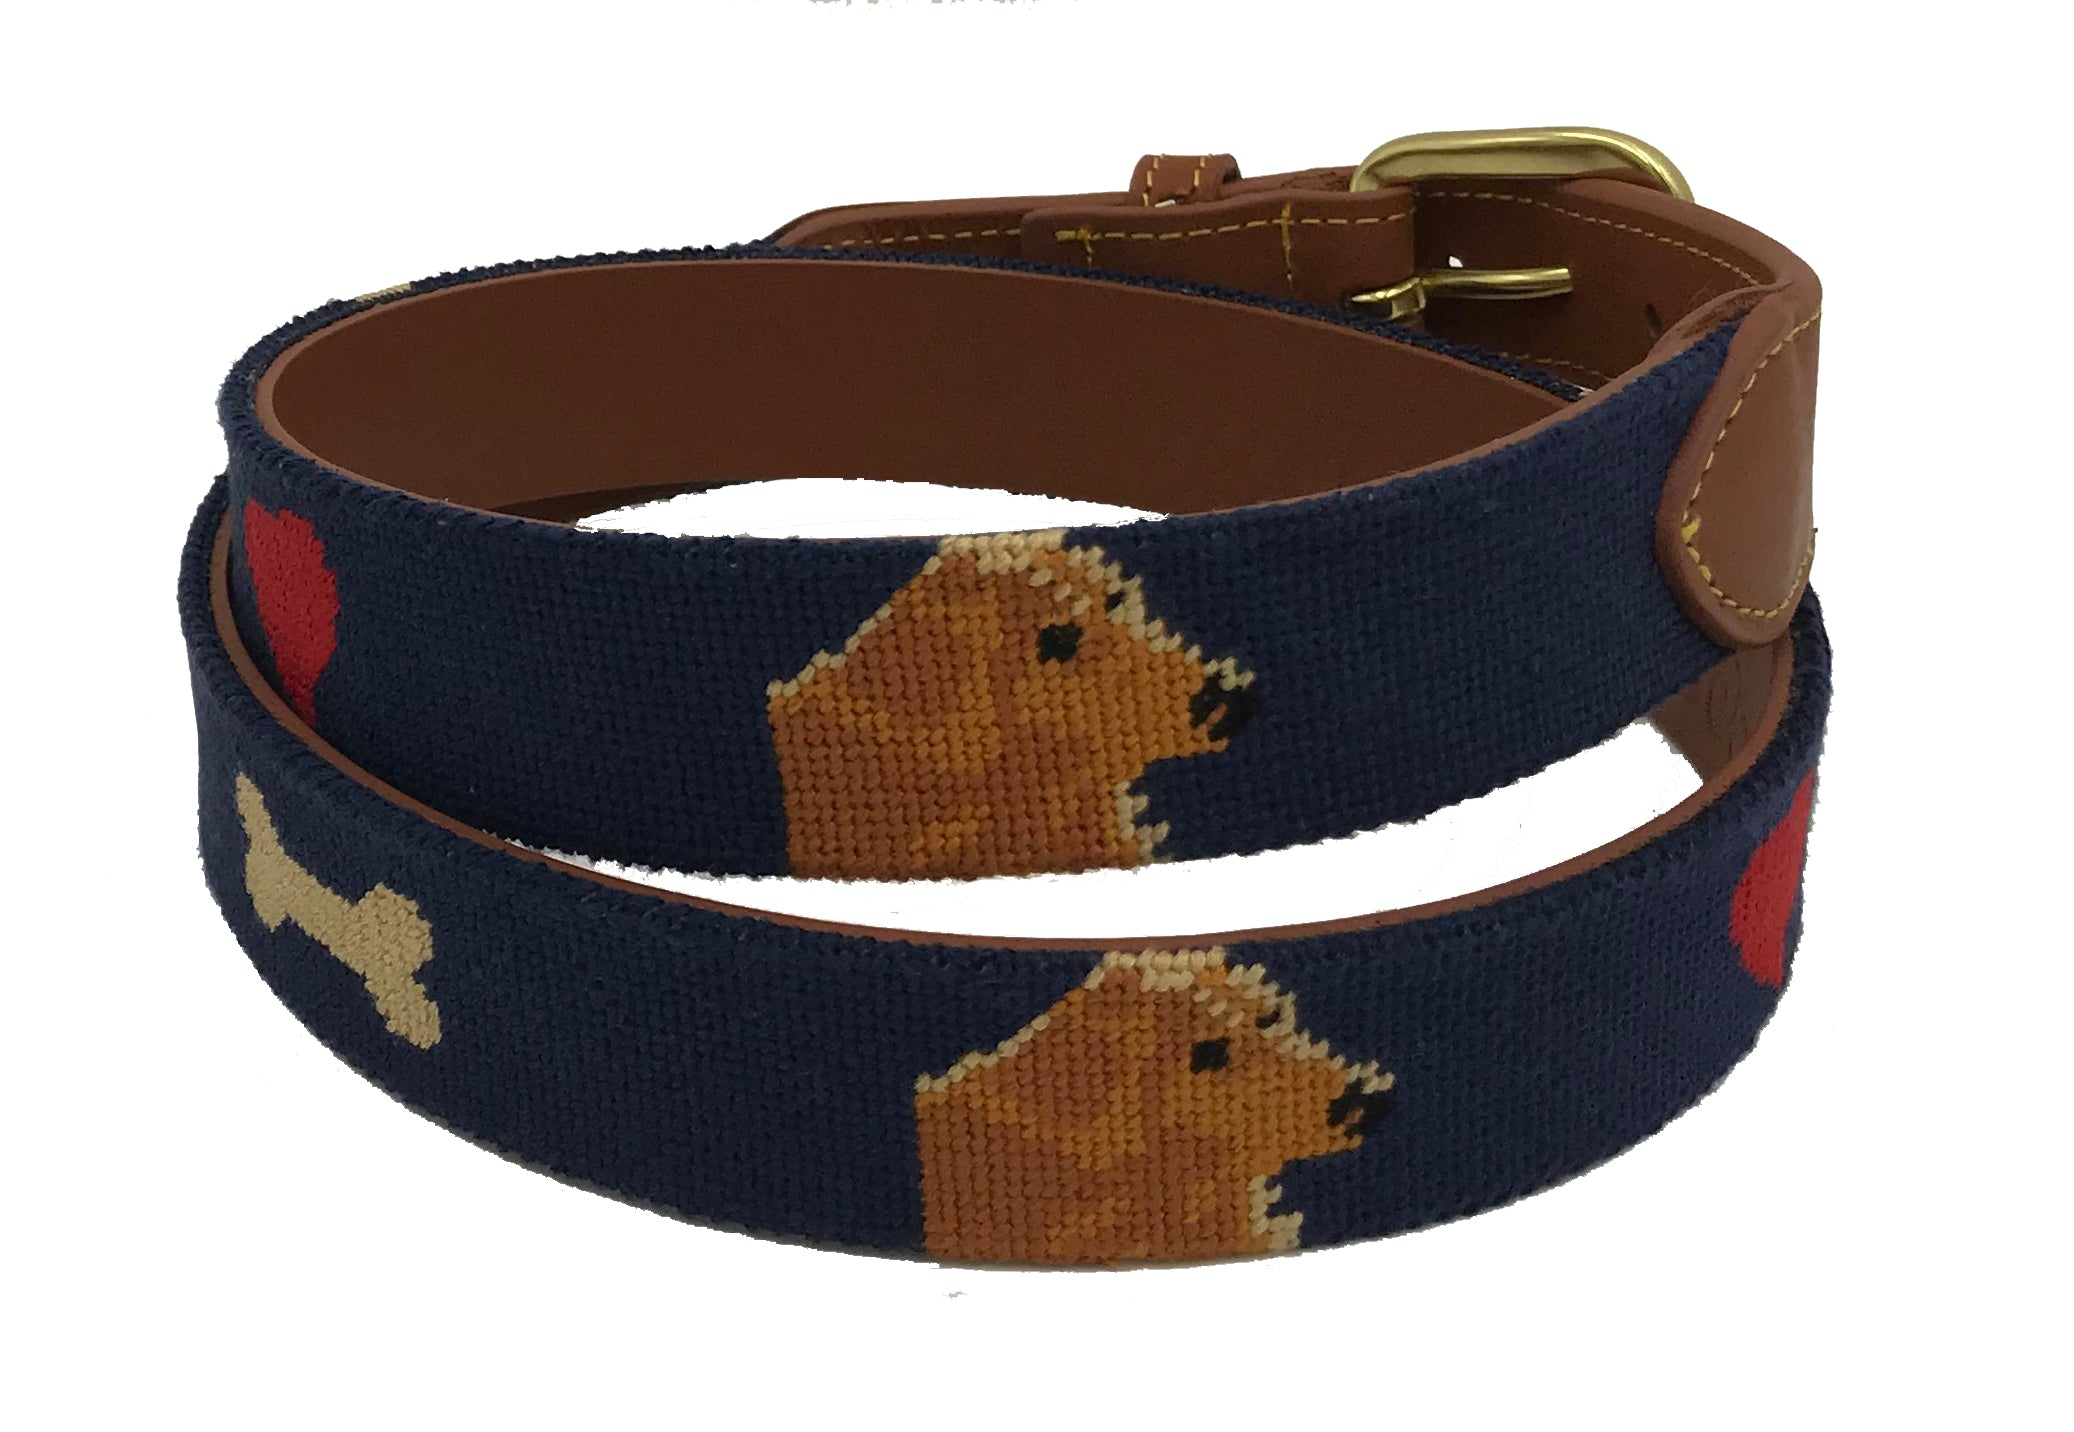 hand-stitched needle-point belts Golden Retriever Dog - charlestonbelt.com